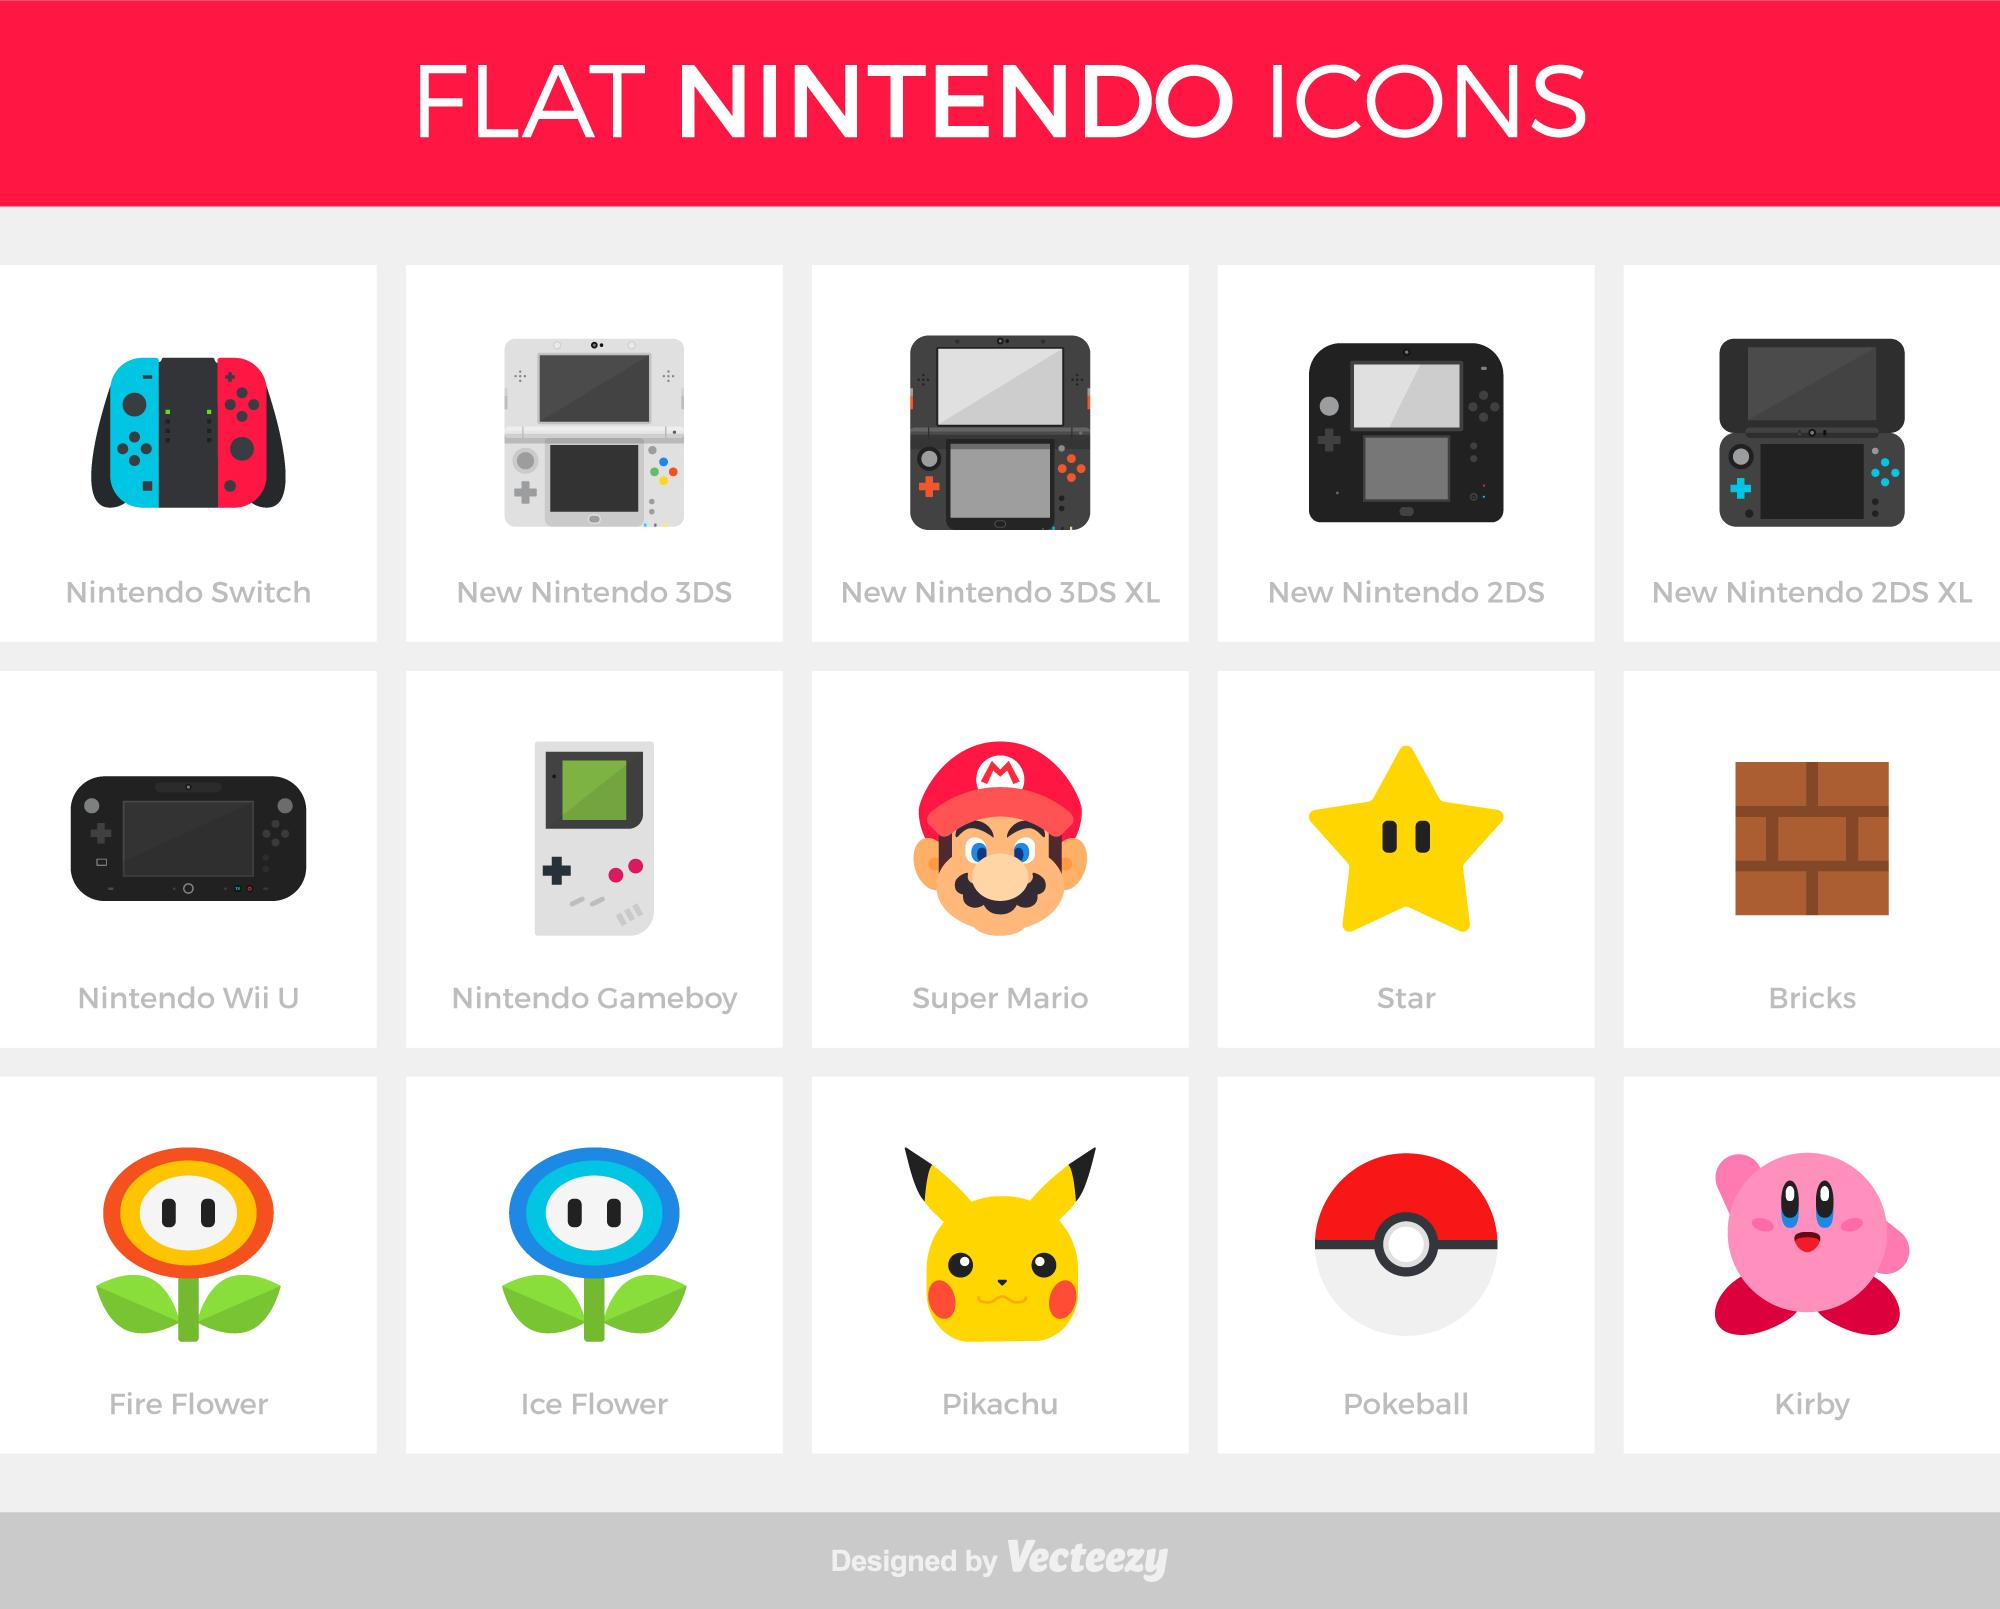 Free Download: Flat Nintendo Icons